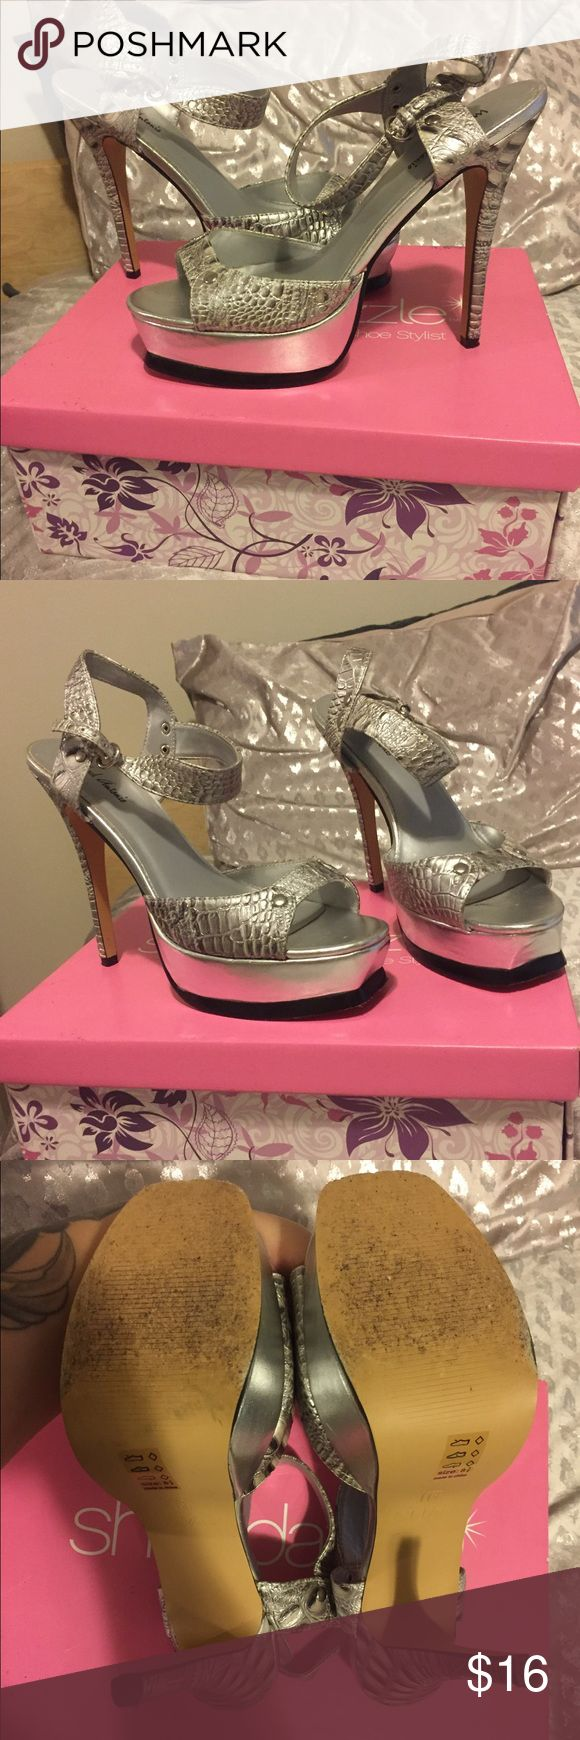 """Silver High Heel Shoe Dazzle Sandals Size 8.5 Beautiful silver high heel sandals by Shoe Dazzle in a size 8.5. Worn twice, in great condition. Heel height is about 4"""". Shoe Dazzle Shoes Sandals"""